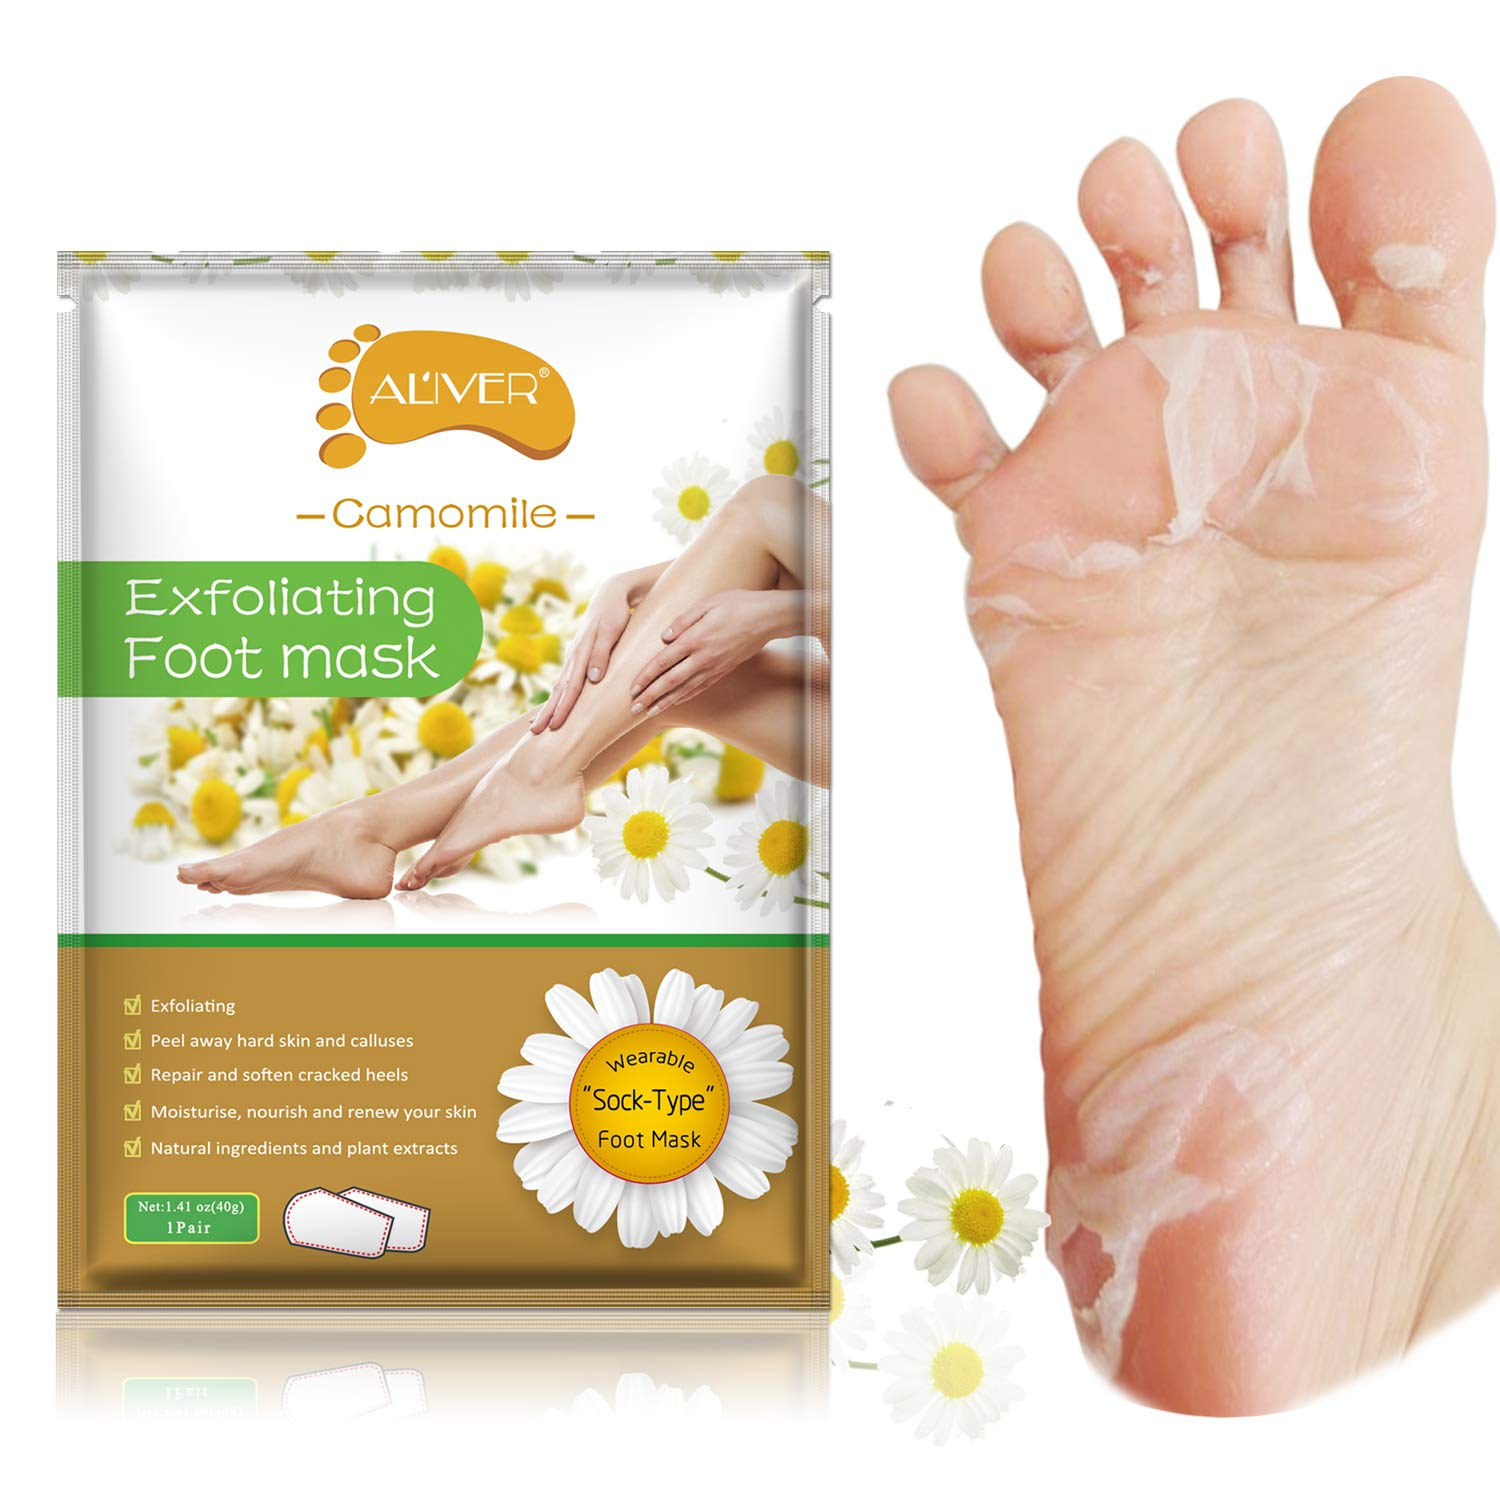 2 Pairs Foot Peeling Mask, Camomile Scented Exfoliating Callus Peel Booties, Baby Your Foot Naturally in 1 Week (Camomile) DongEr